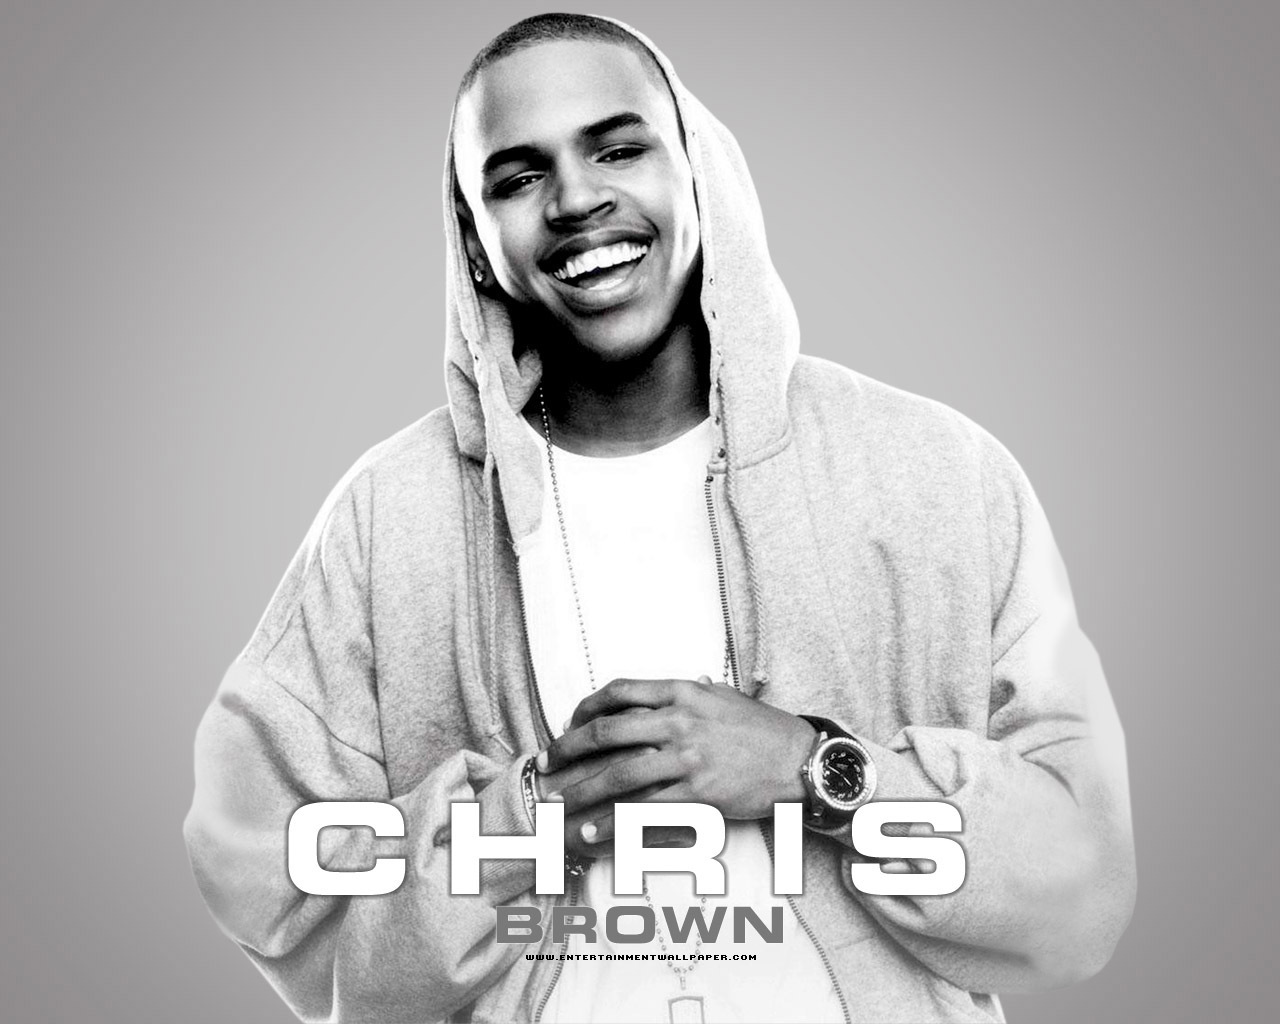 Chris Brown Wallpaper Movies Rapper Wallpapers Share View With Full 1280x1024